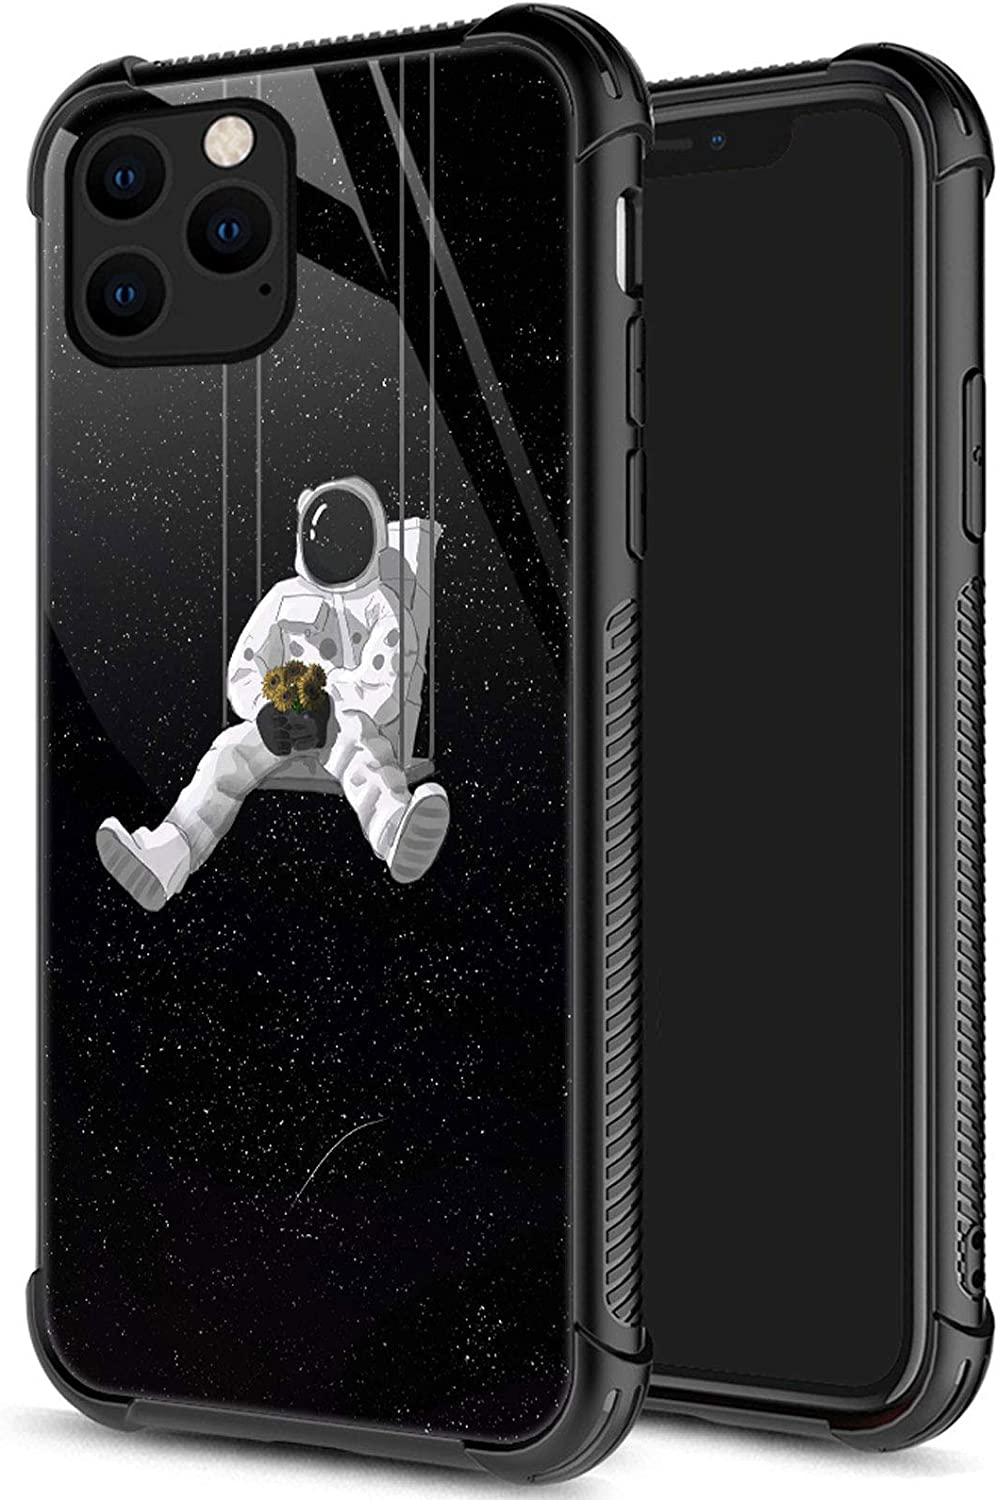 iPhone 12 Mini Case, Astronauts on Swings iPhone 12 Mini Cases for Men Boys, Pattern Design Shockproof Anti-Scratch Organic Glass Case for Apple iPhone 12 Mini 5.4-inch Astronauts on Swings